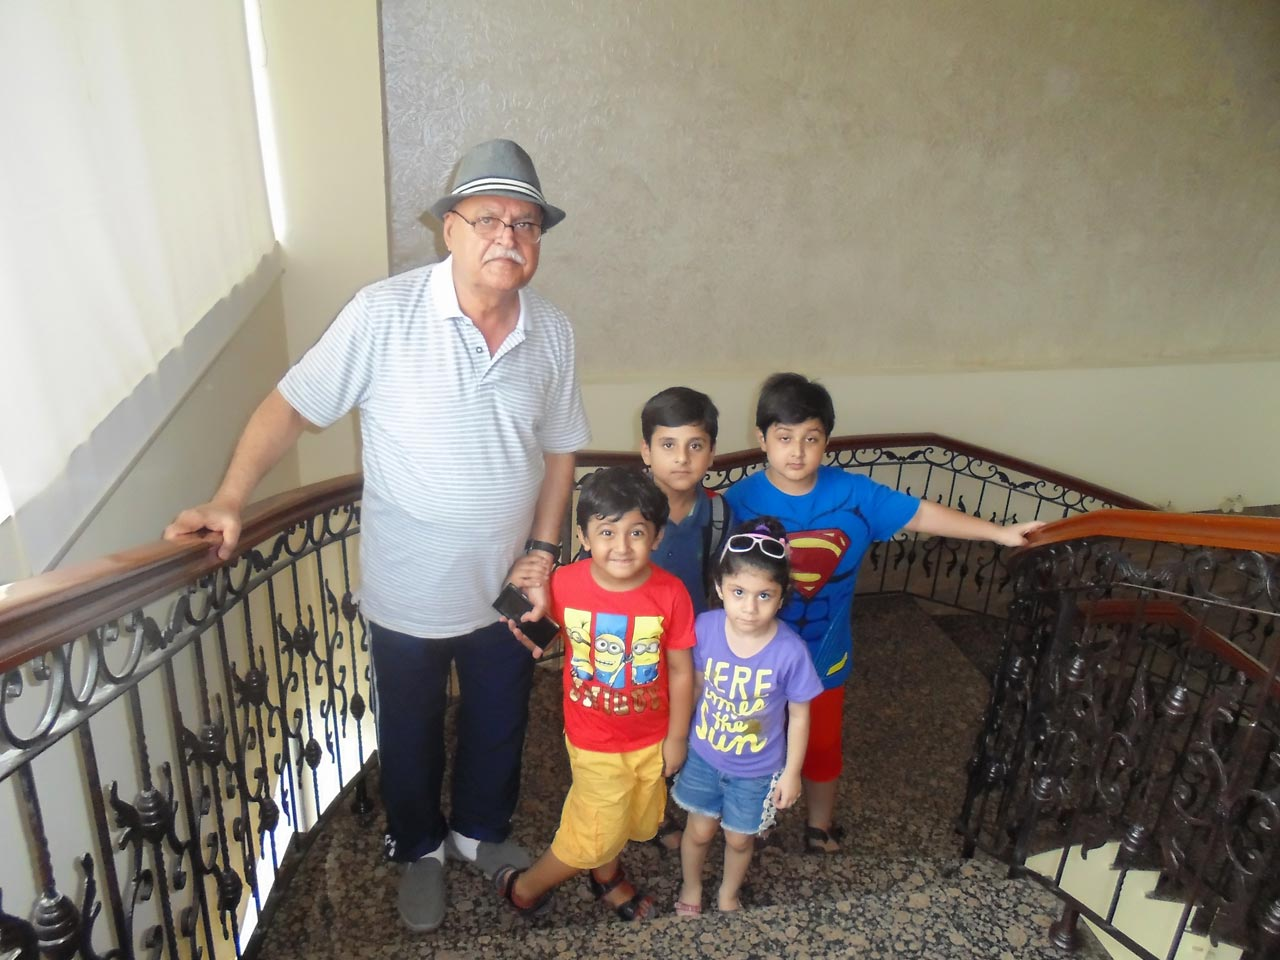 Mahtab Khan with his grand kids